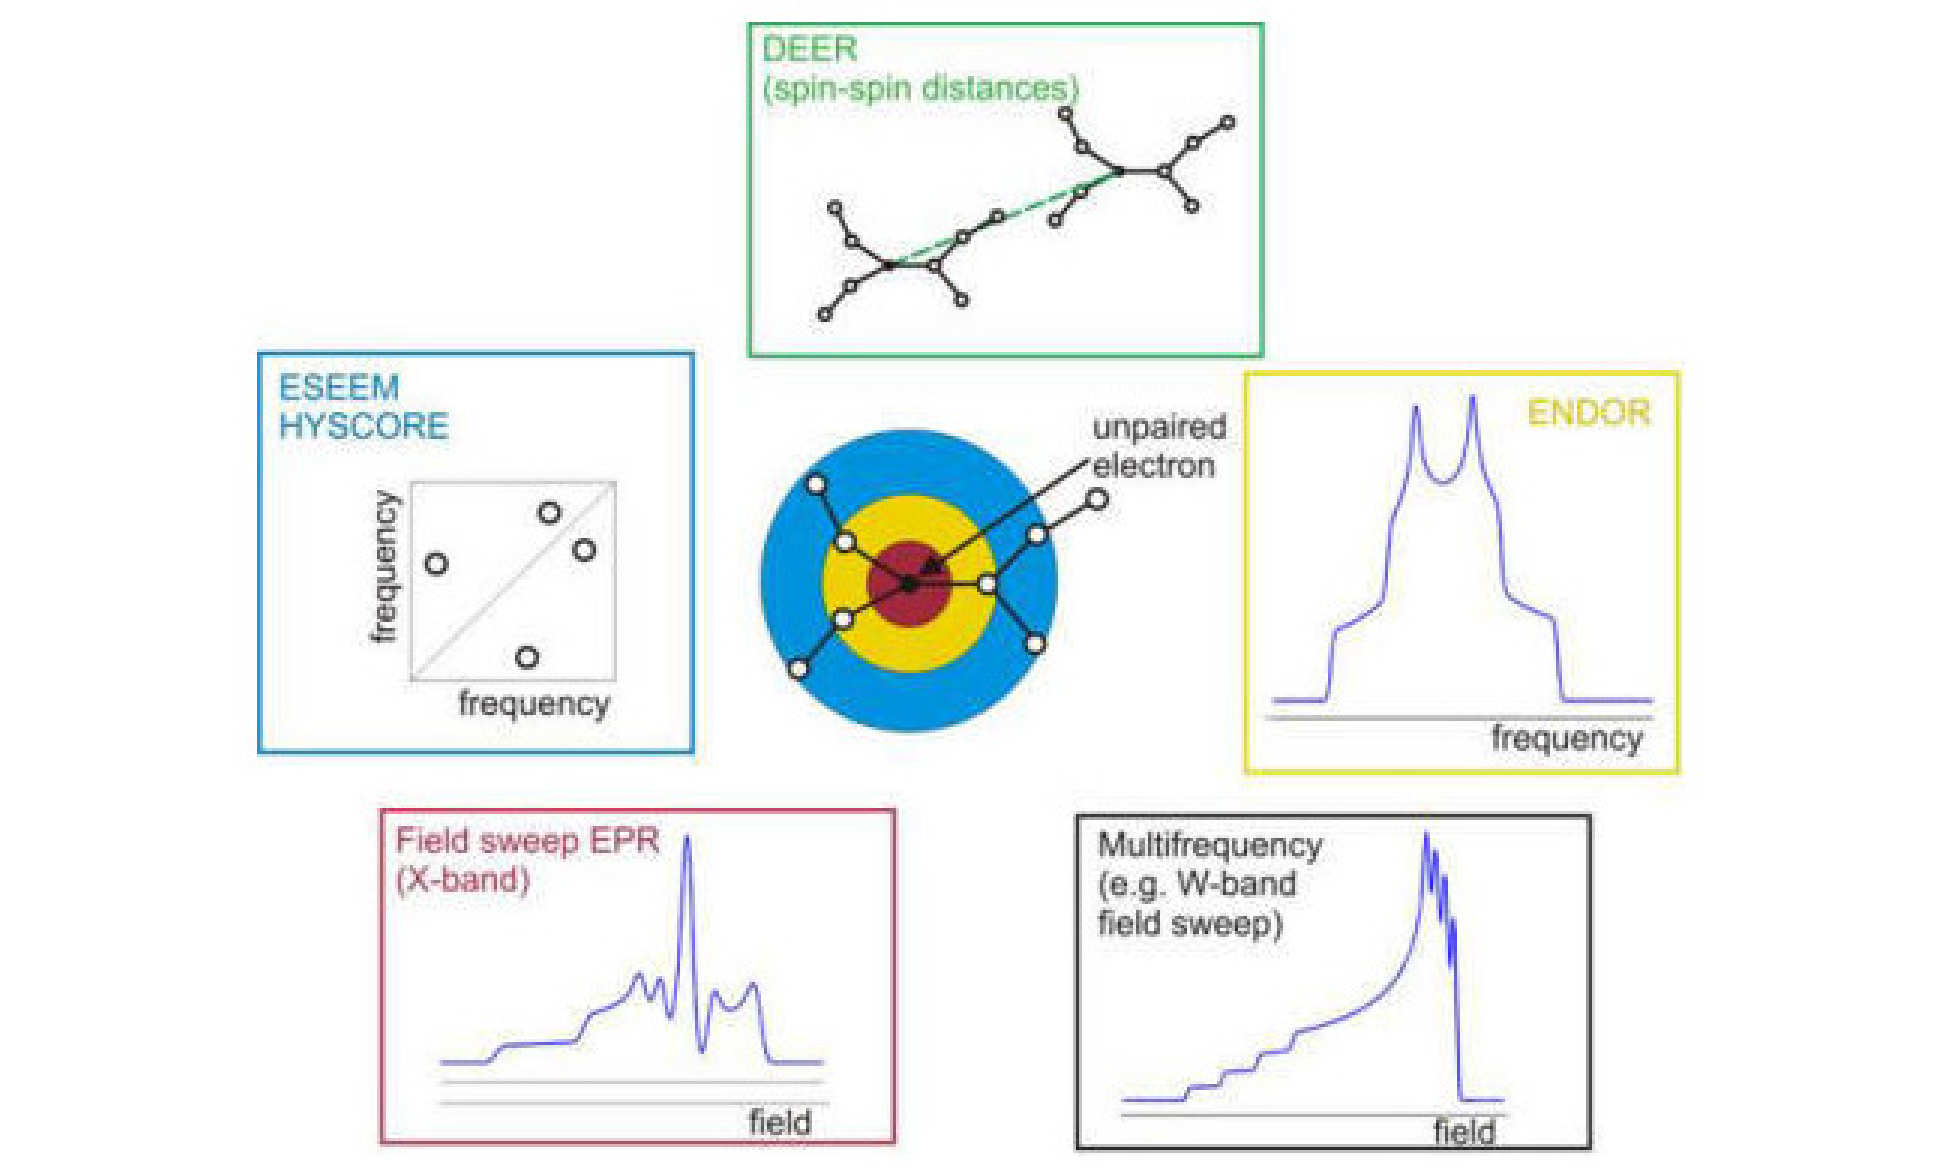 Fig. 1: Illustration of the use of EPR for structural analysis. The position of the unpaired electron is indicated by the full black circle in the fictive molecule. The coloured rings and corresponding schematic spectra indicate which parts of the molecule can approximately be studied with a particular EPR technique. Figure adapted from C. Calle et al., Chimia, 2001, 55, 763.